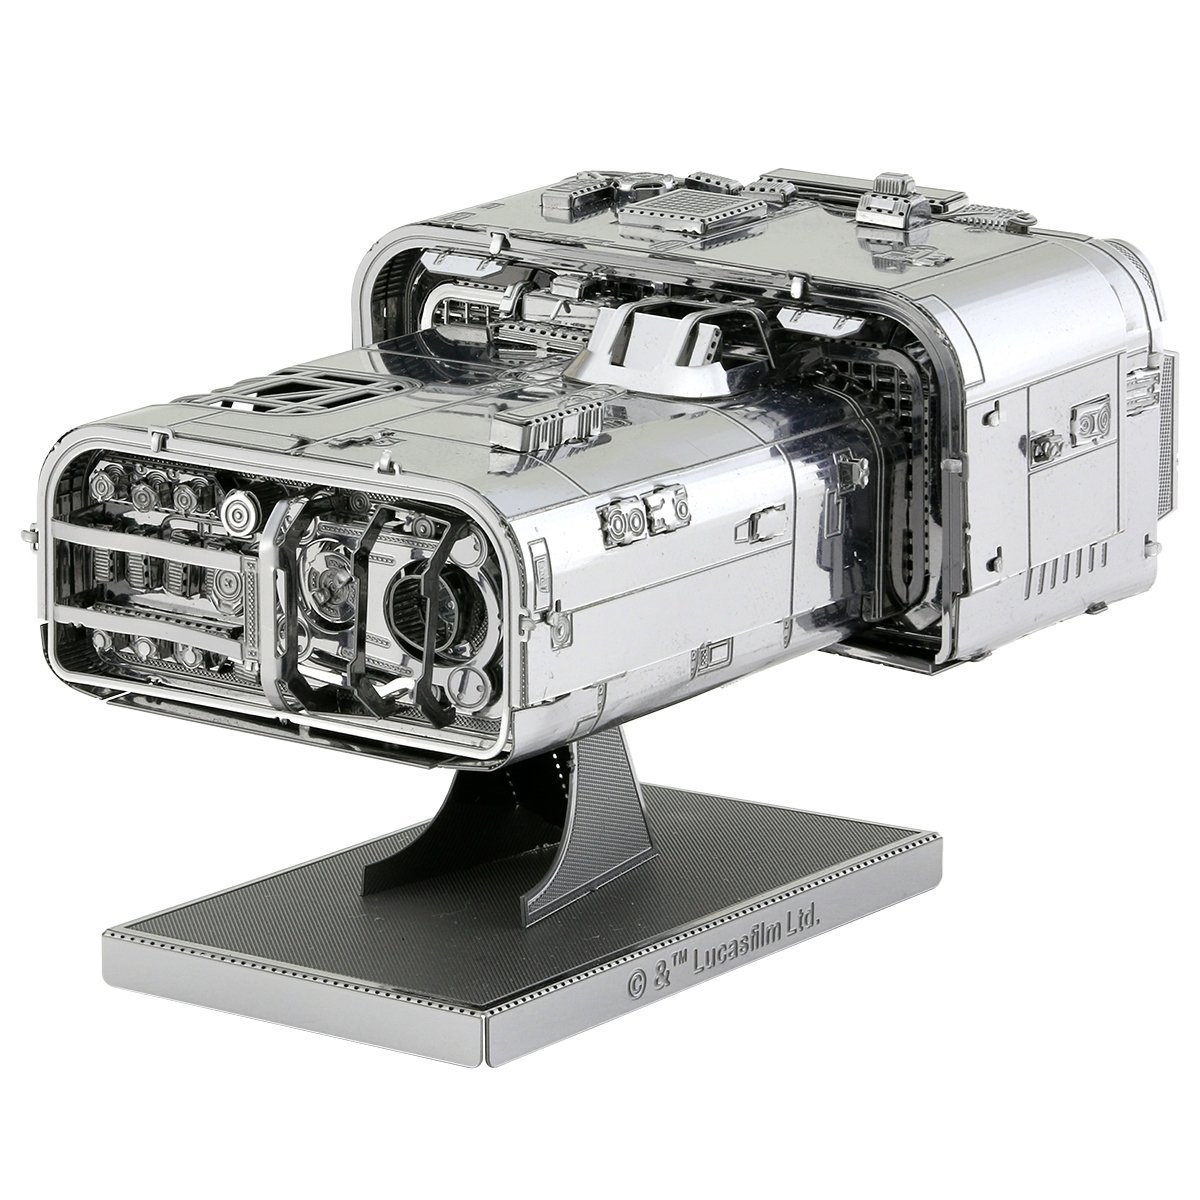 Solo: ASWS Moloch's Landspeeder 3D Metal Model Kit